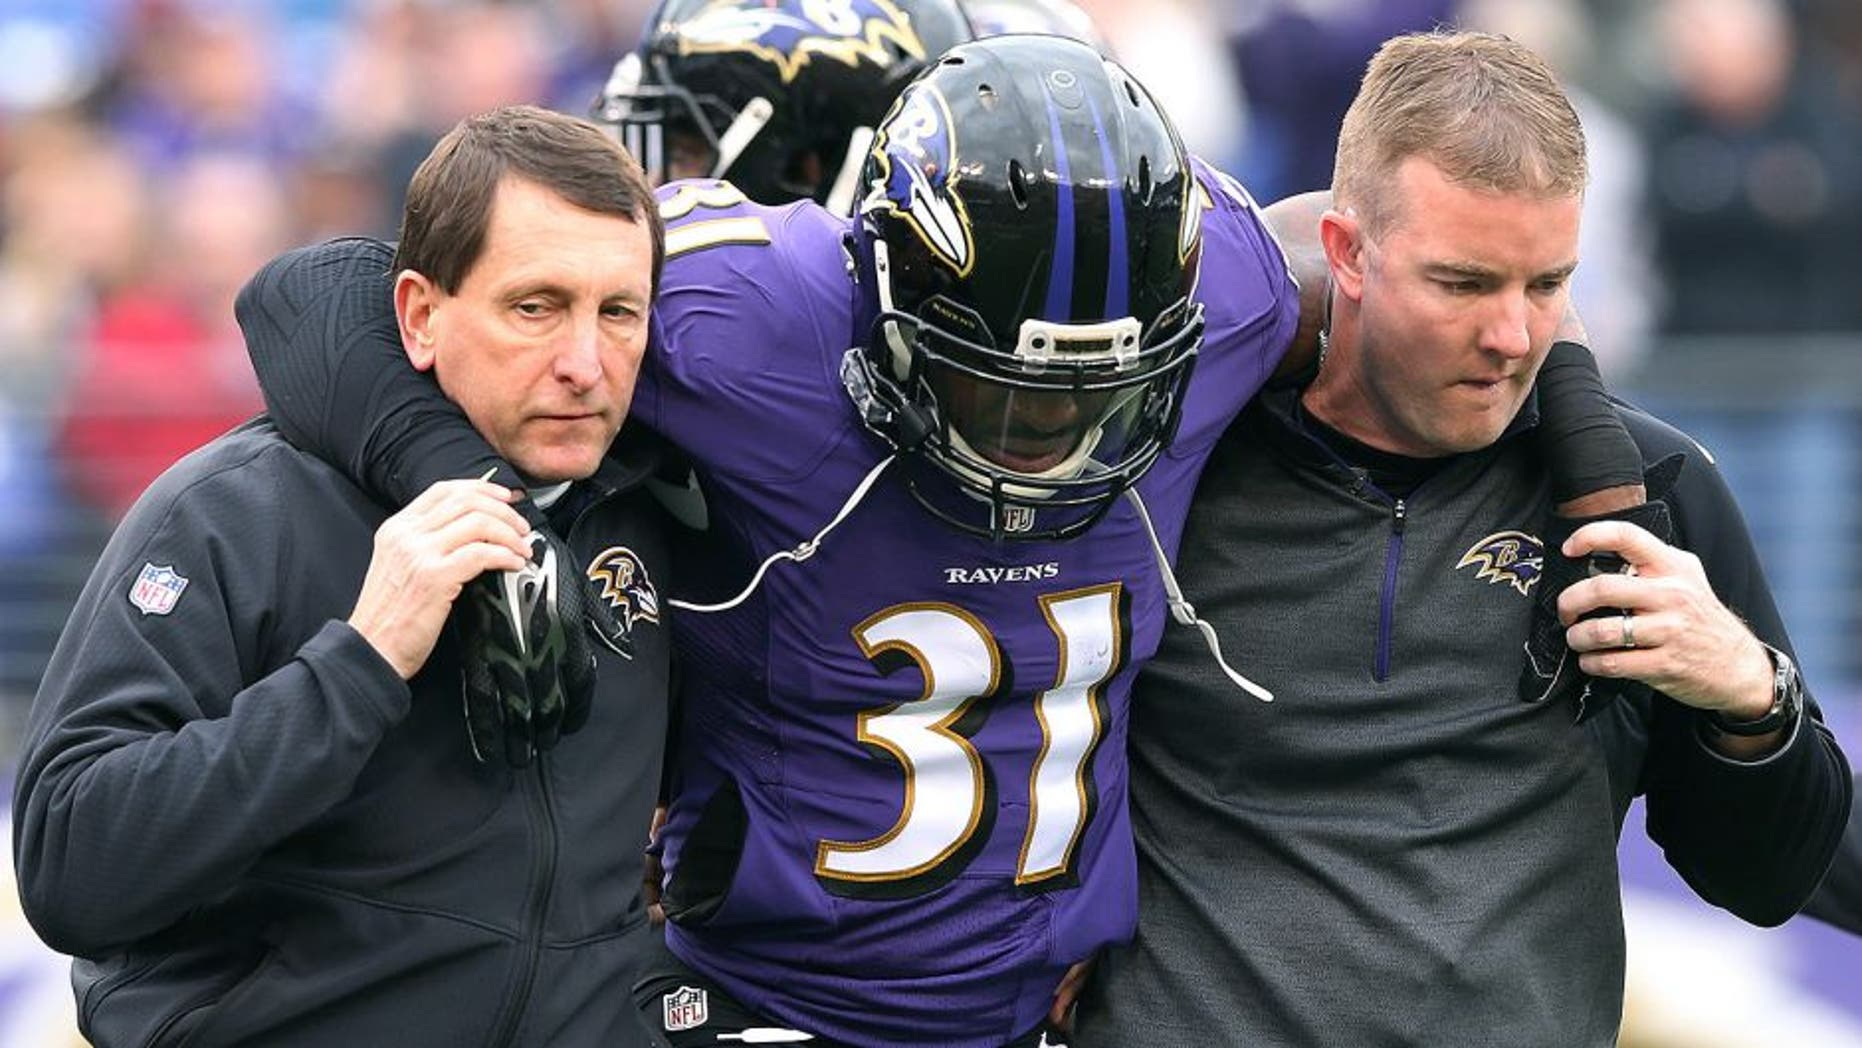 Dec 14, 2014; Baltimore, MD, USA; Baltimore Ravens safety Terrence Brooks (31) is assisted off the field after suffering an apparent injury on the opening kickoff against the Jacksonville Jaguars at M&T Bank Stadium. Mandatory Credit: Mitch Stringer-USA TODAY Sports